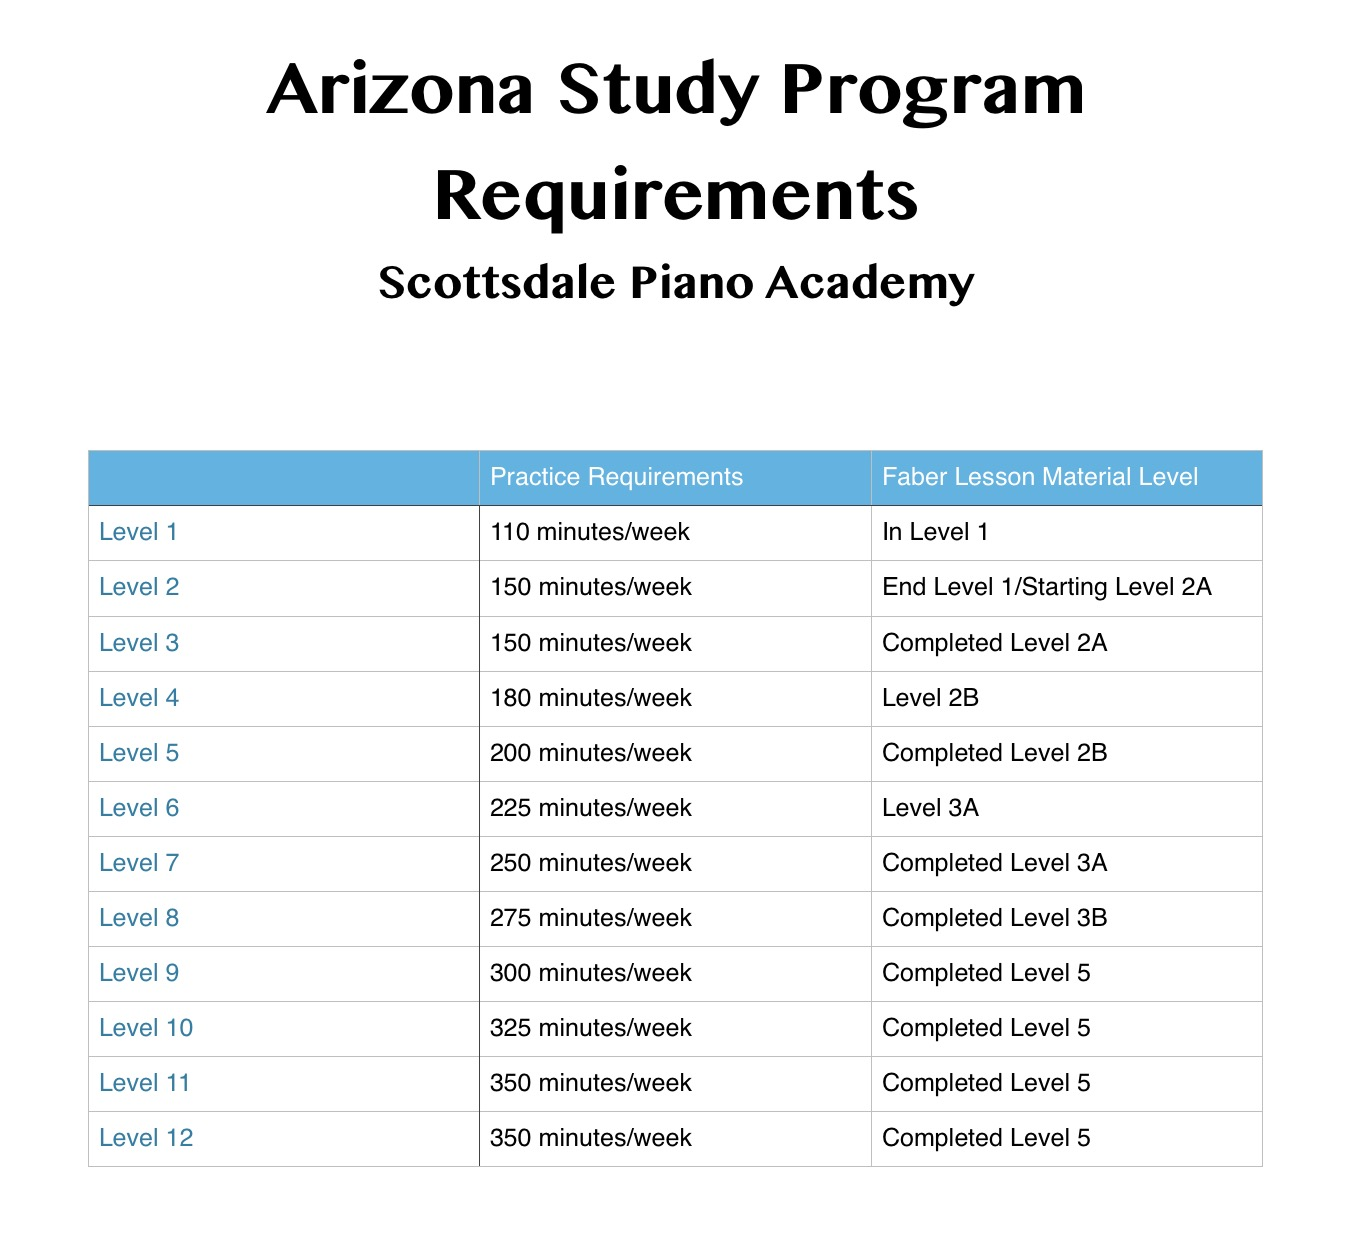 Arizona Study Program - Phoenix Music Teachers Association